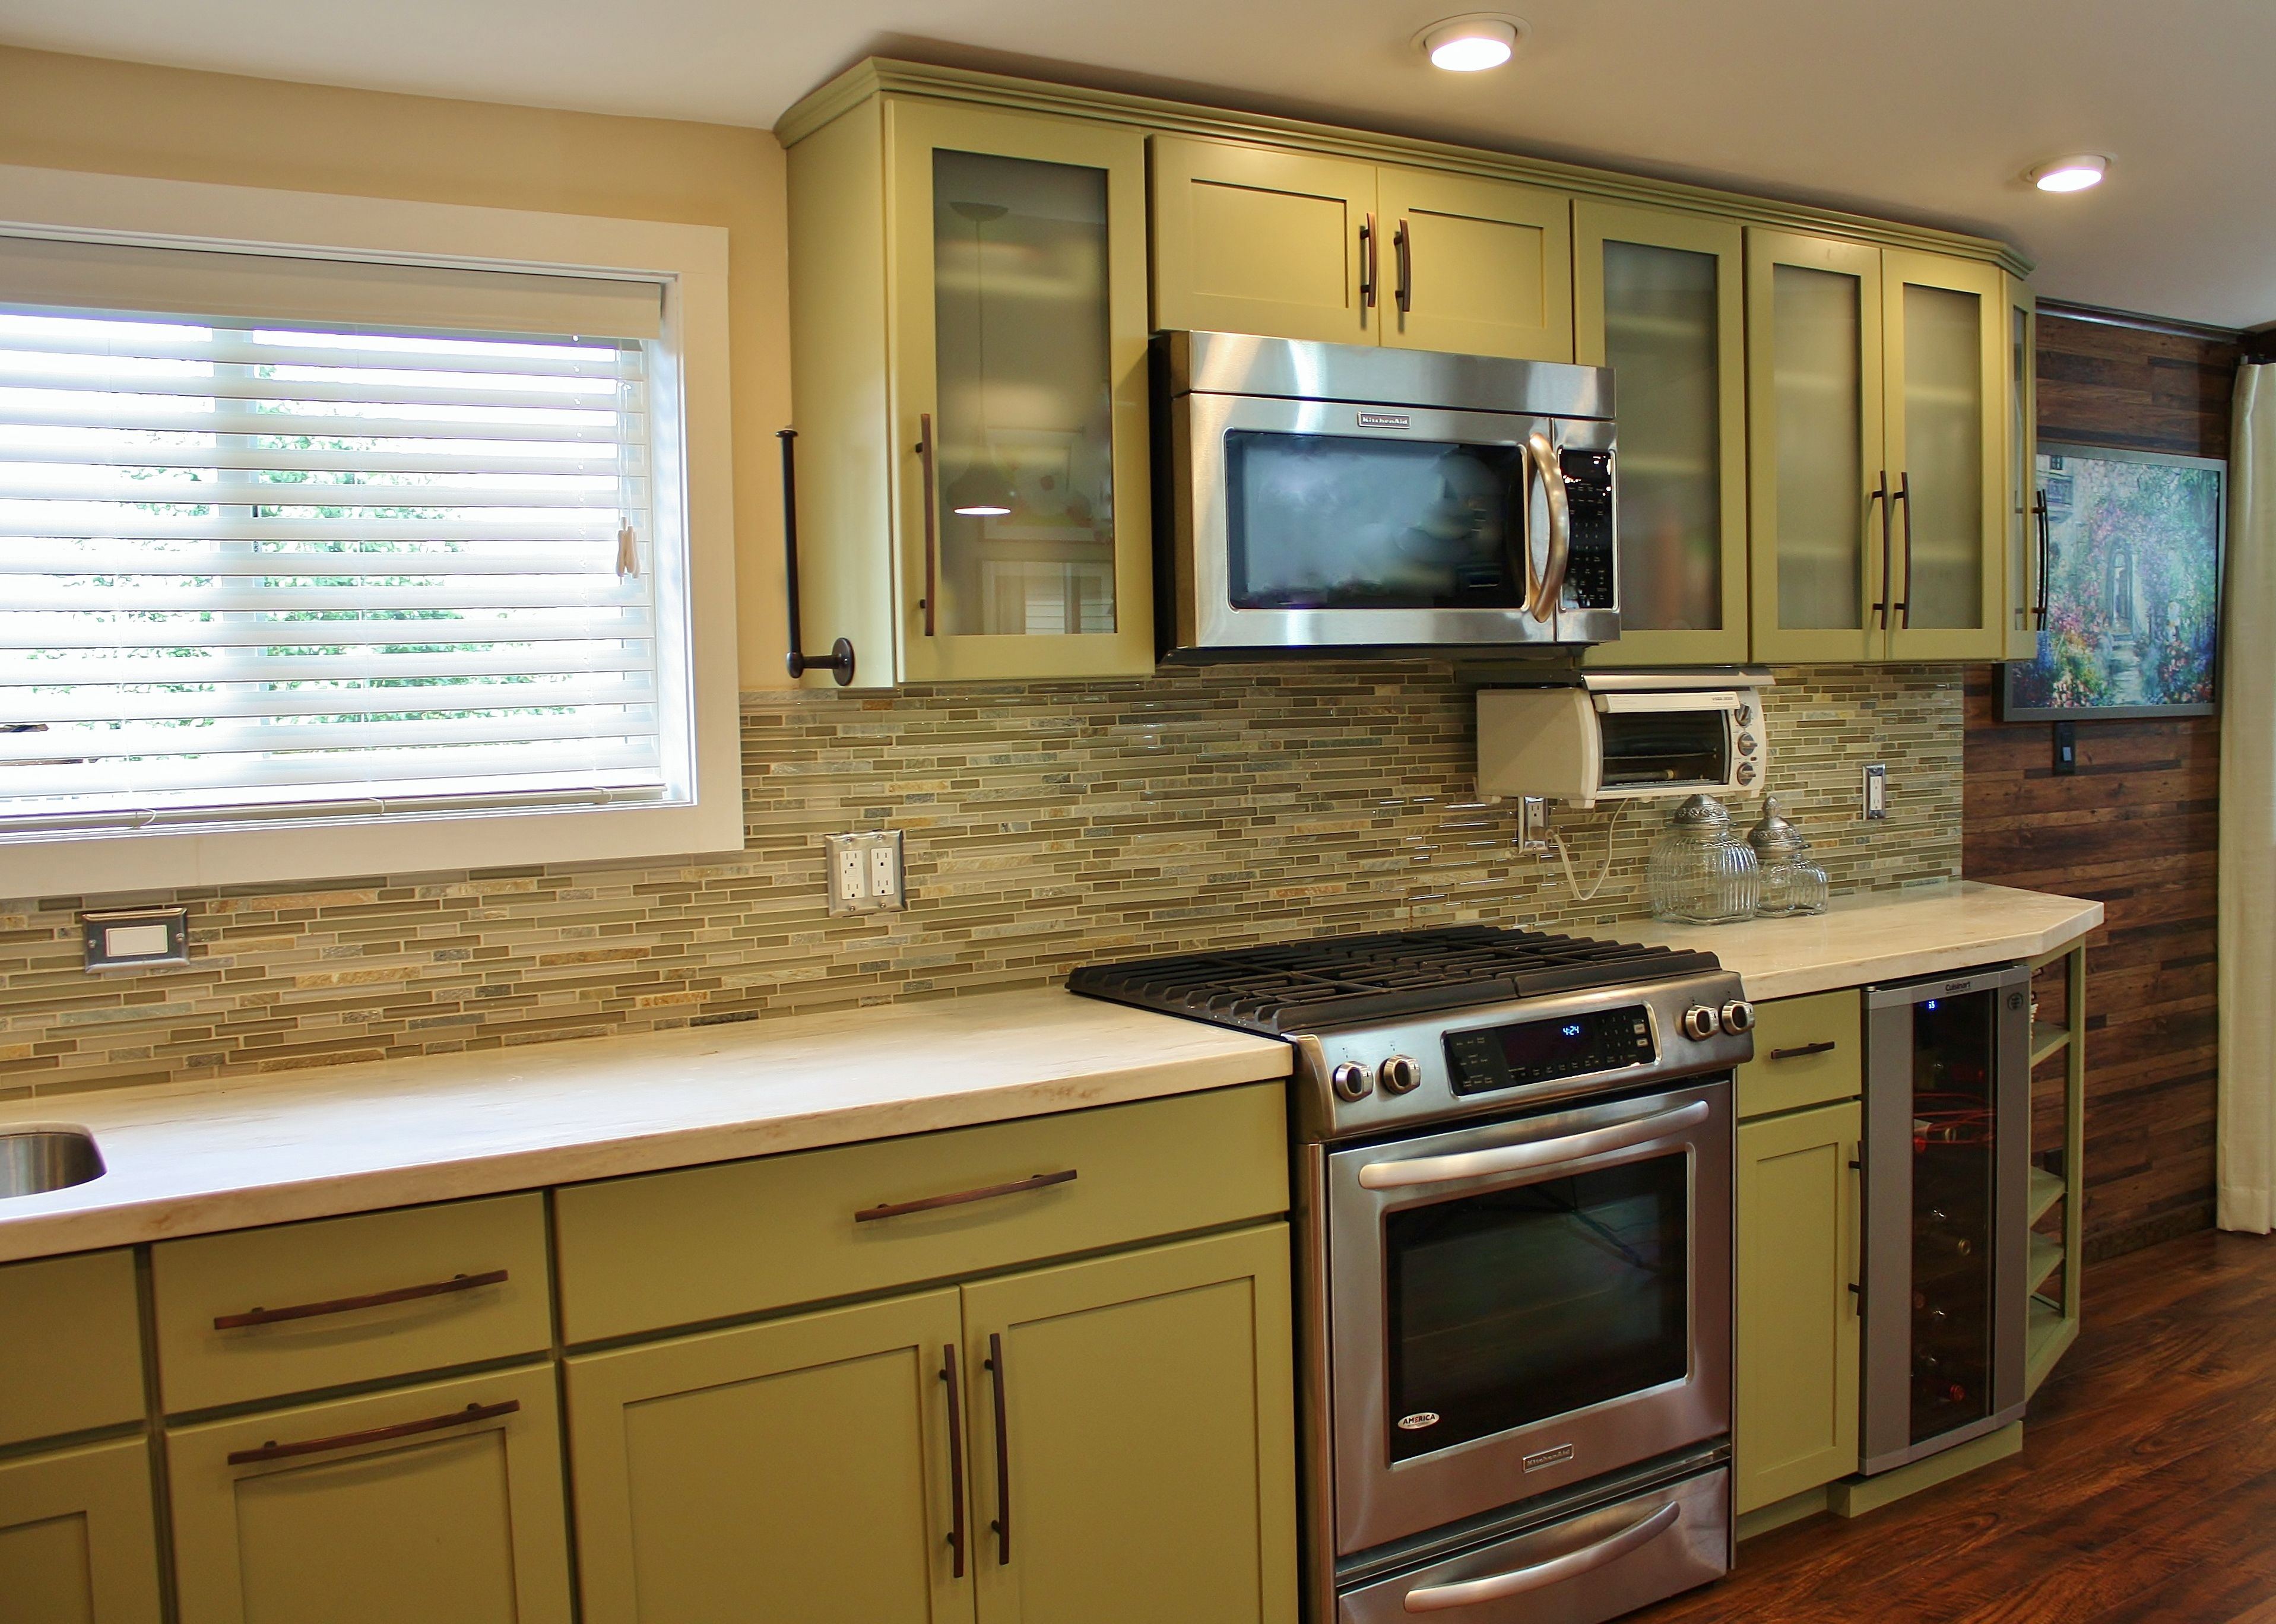 Holiday Kitchens Seattle shaker cabinets, Corian solid surface ...